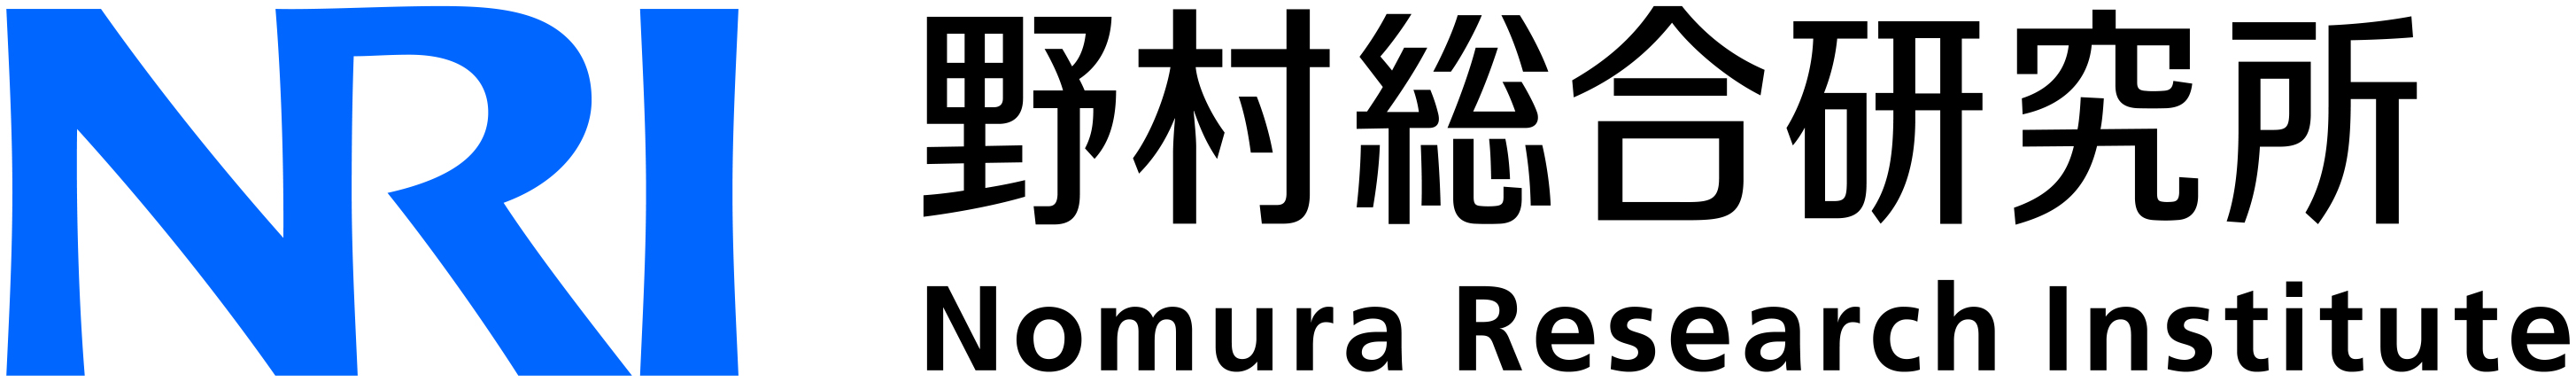 Simple logo kumiawase 04